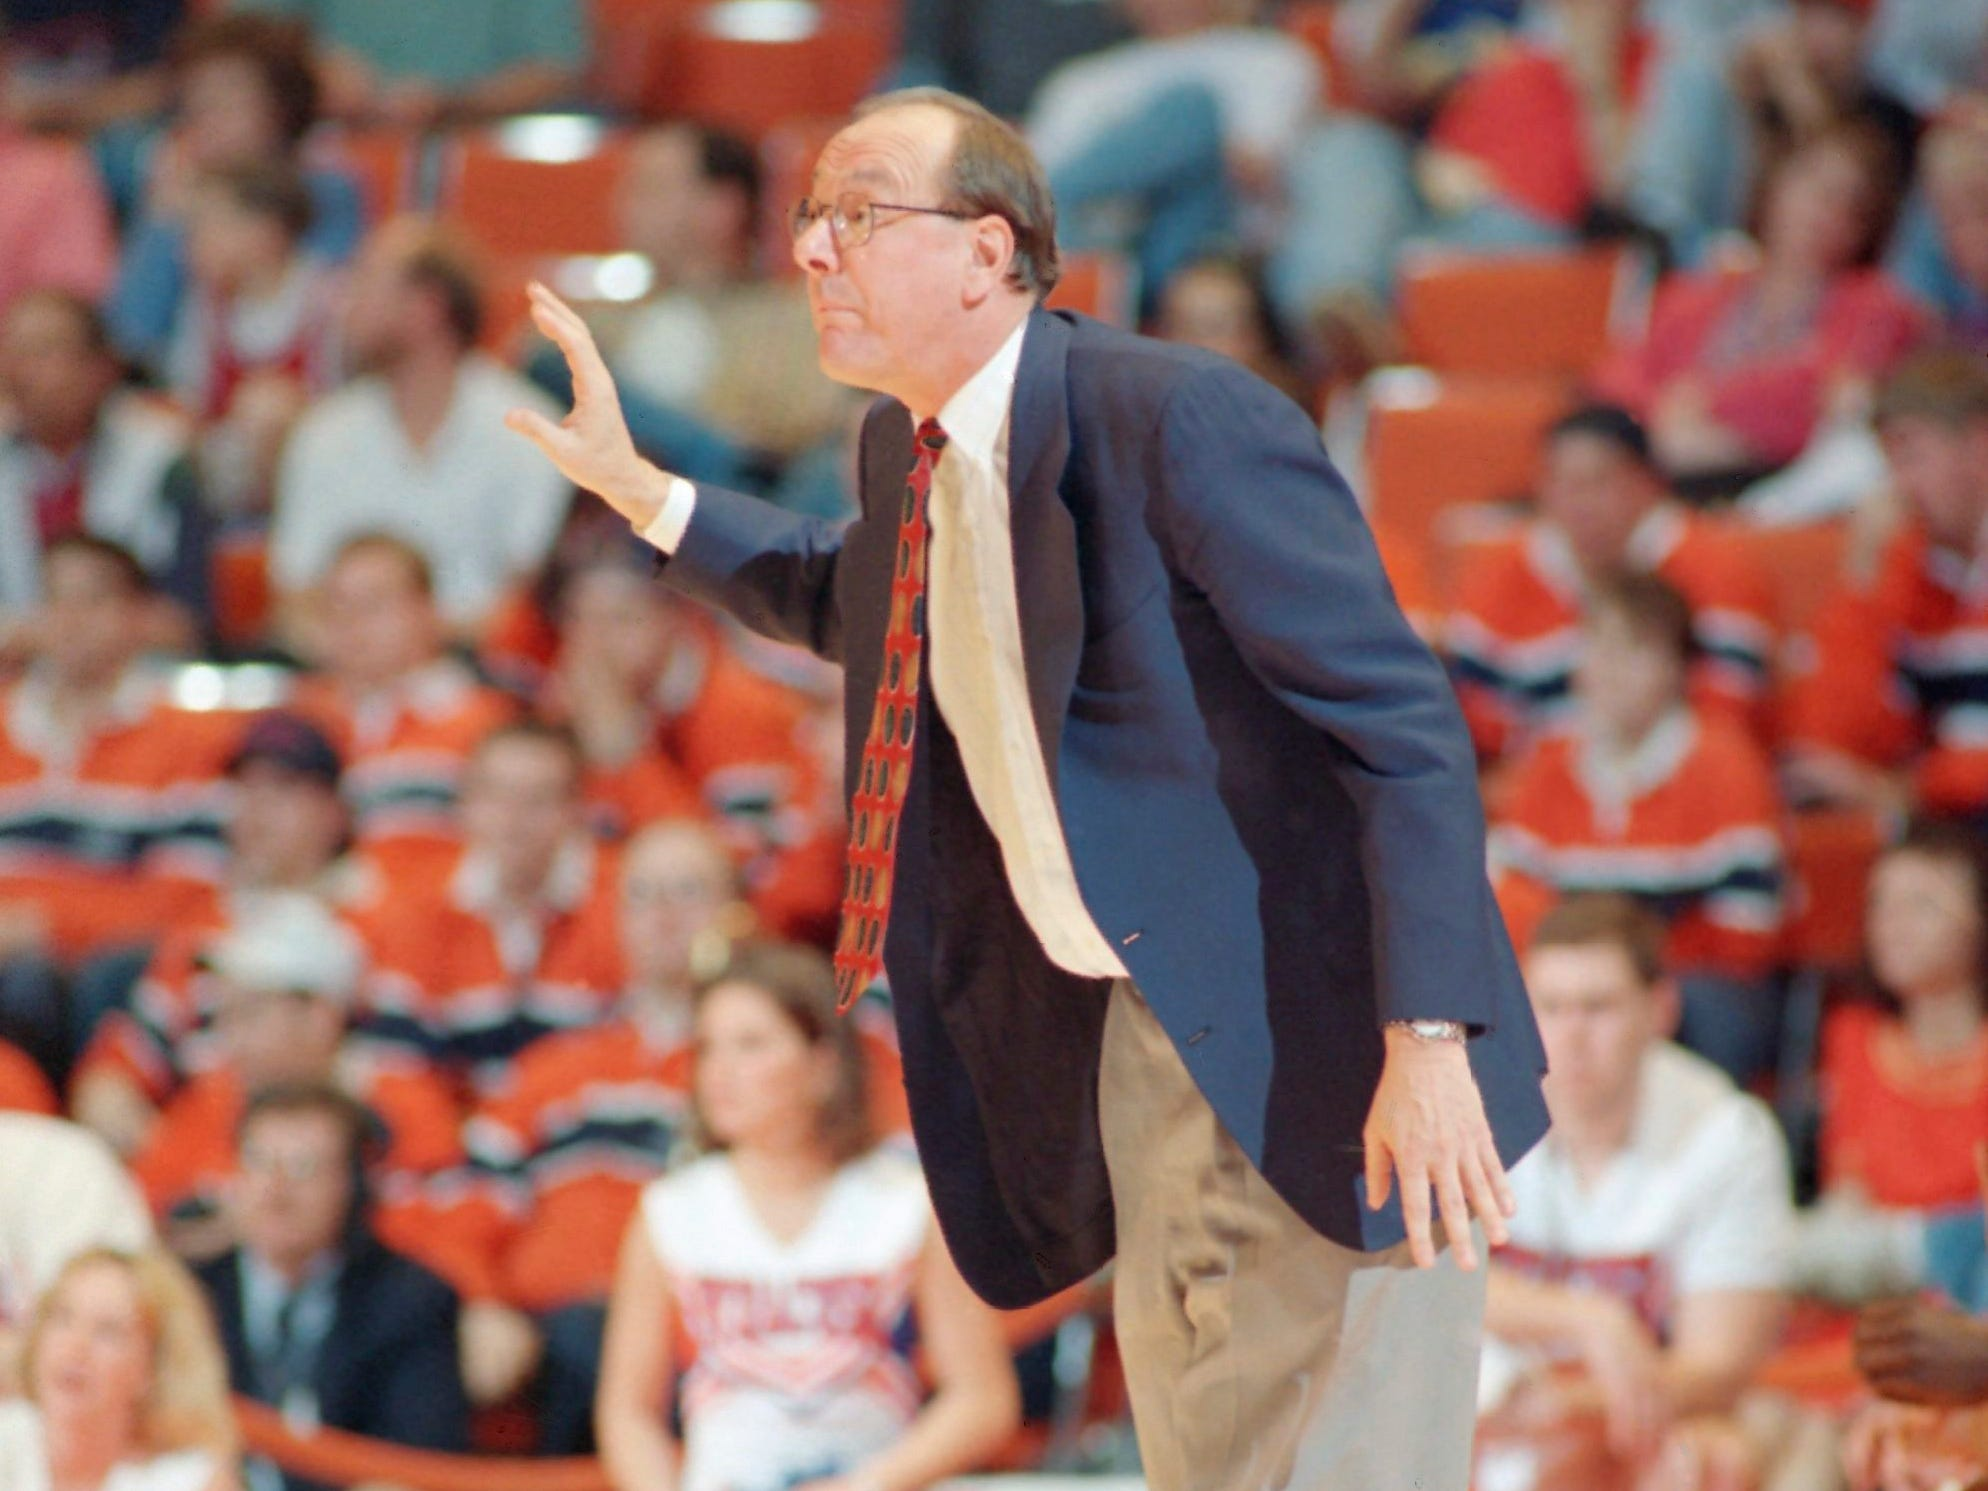 1995: Syracuse coach Jim Boeheim signals to his team during their first round game against Southern Illinois at the NCAA Midwest Regional in Austin, Texas on Friday, March 17, 1995. Syracuse won 96-92. (AP Photo/David J. Phillip)